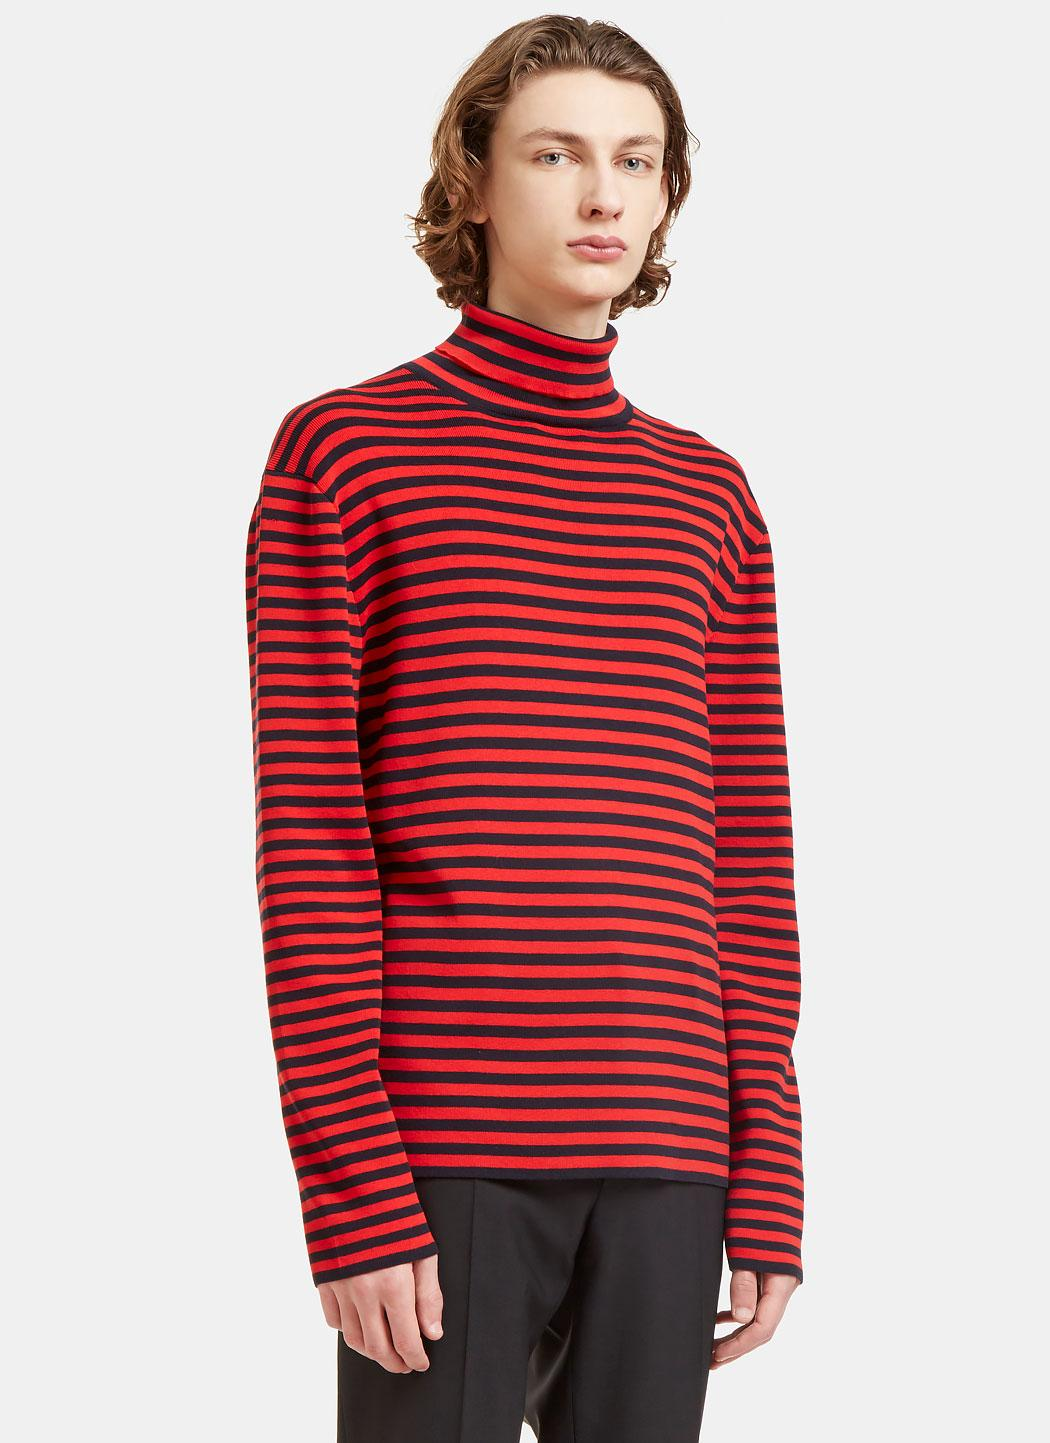 Cozy up in your new favorite knit! Both stylish and comfortable, add this Striped Sweater Knit to your fall/winter collection. Just one out of five, this collection features black stripes that alternate with fall staples and neutral tones for the perfect look.